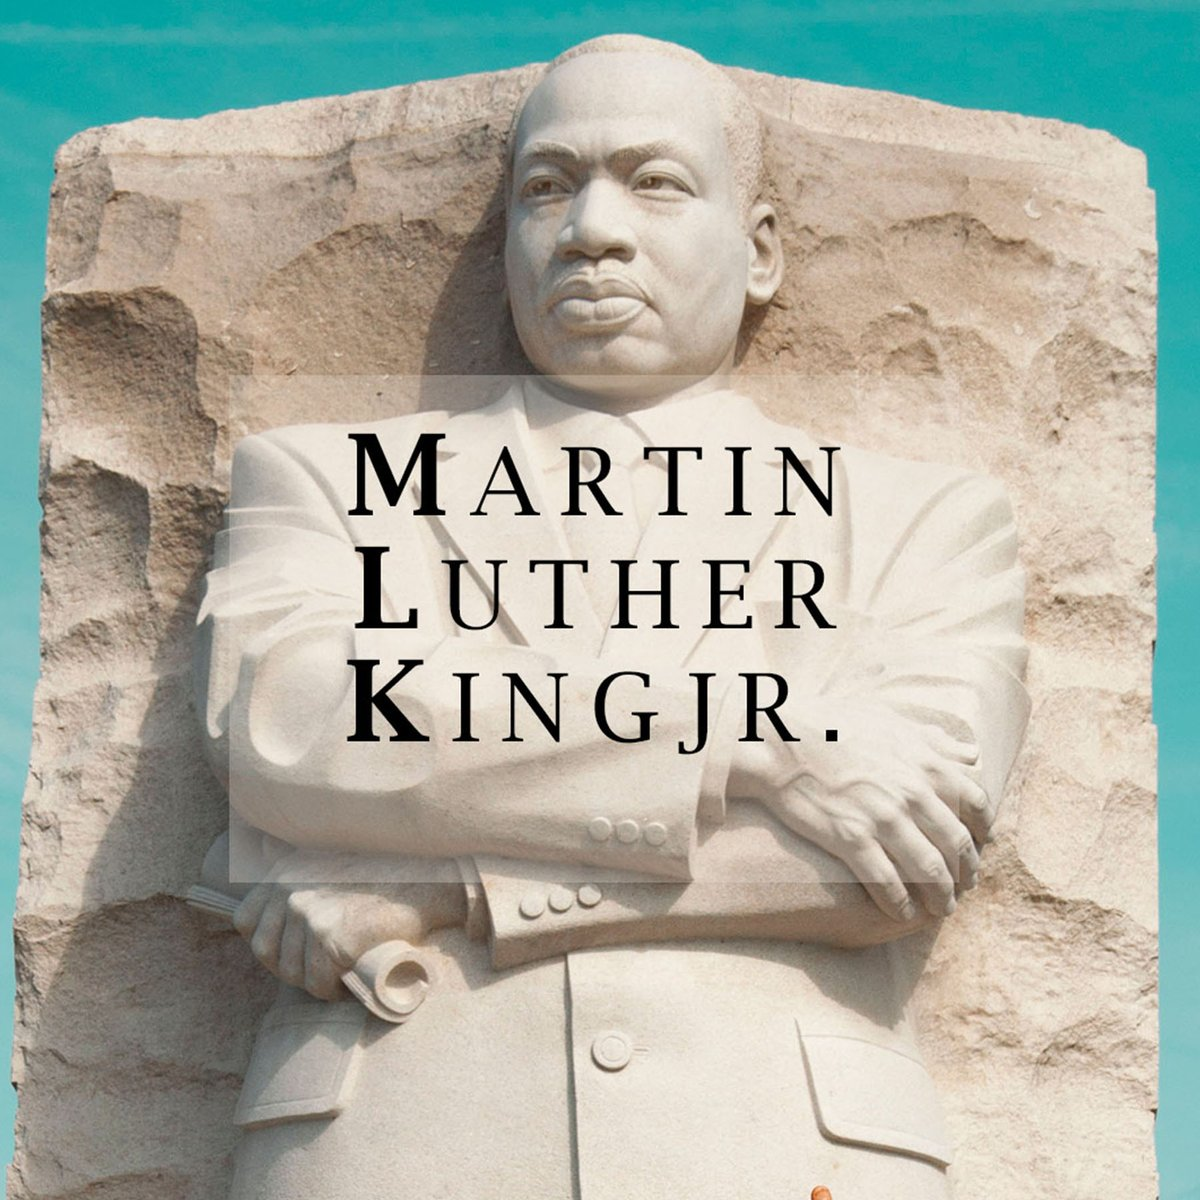 Today we honor Martin Luther King JR.  Please be advised that all offices will be closed today  Monday, January 18th & will reopen Tuesday, January 19th.  #MLK #MLKDAY